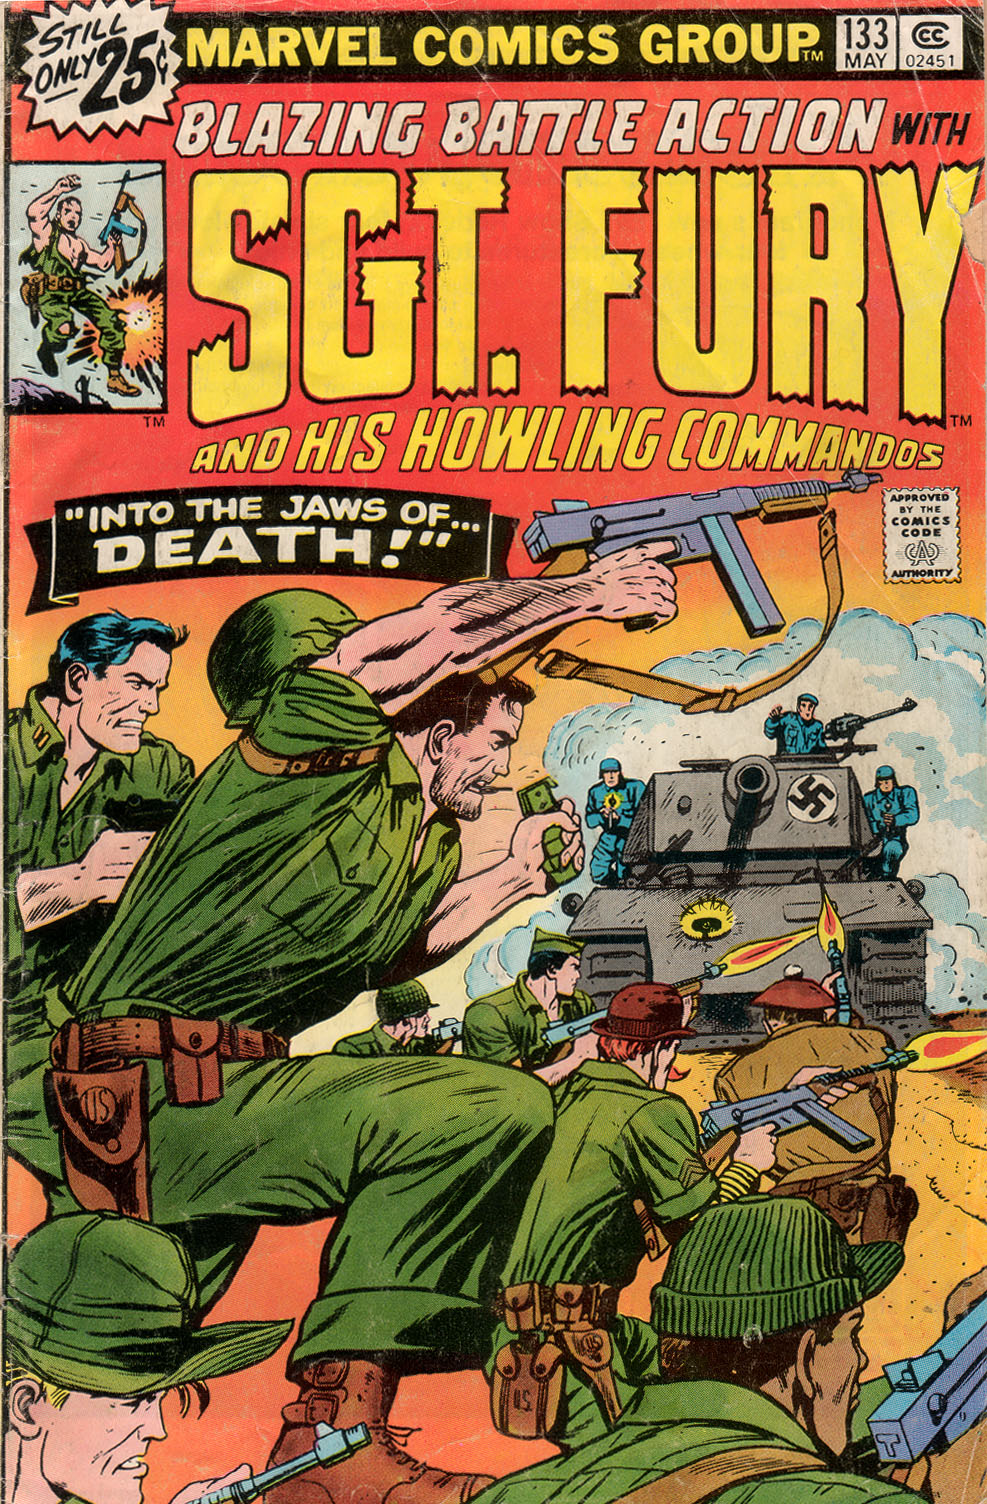 Sgt. Fury 133 Page 1